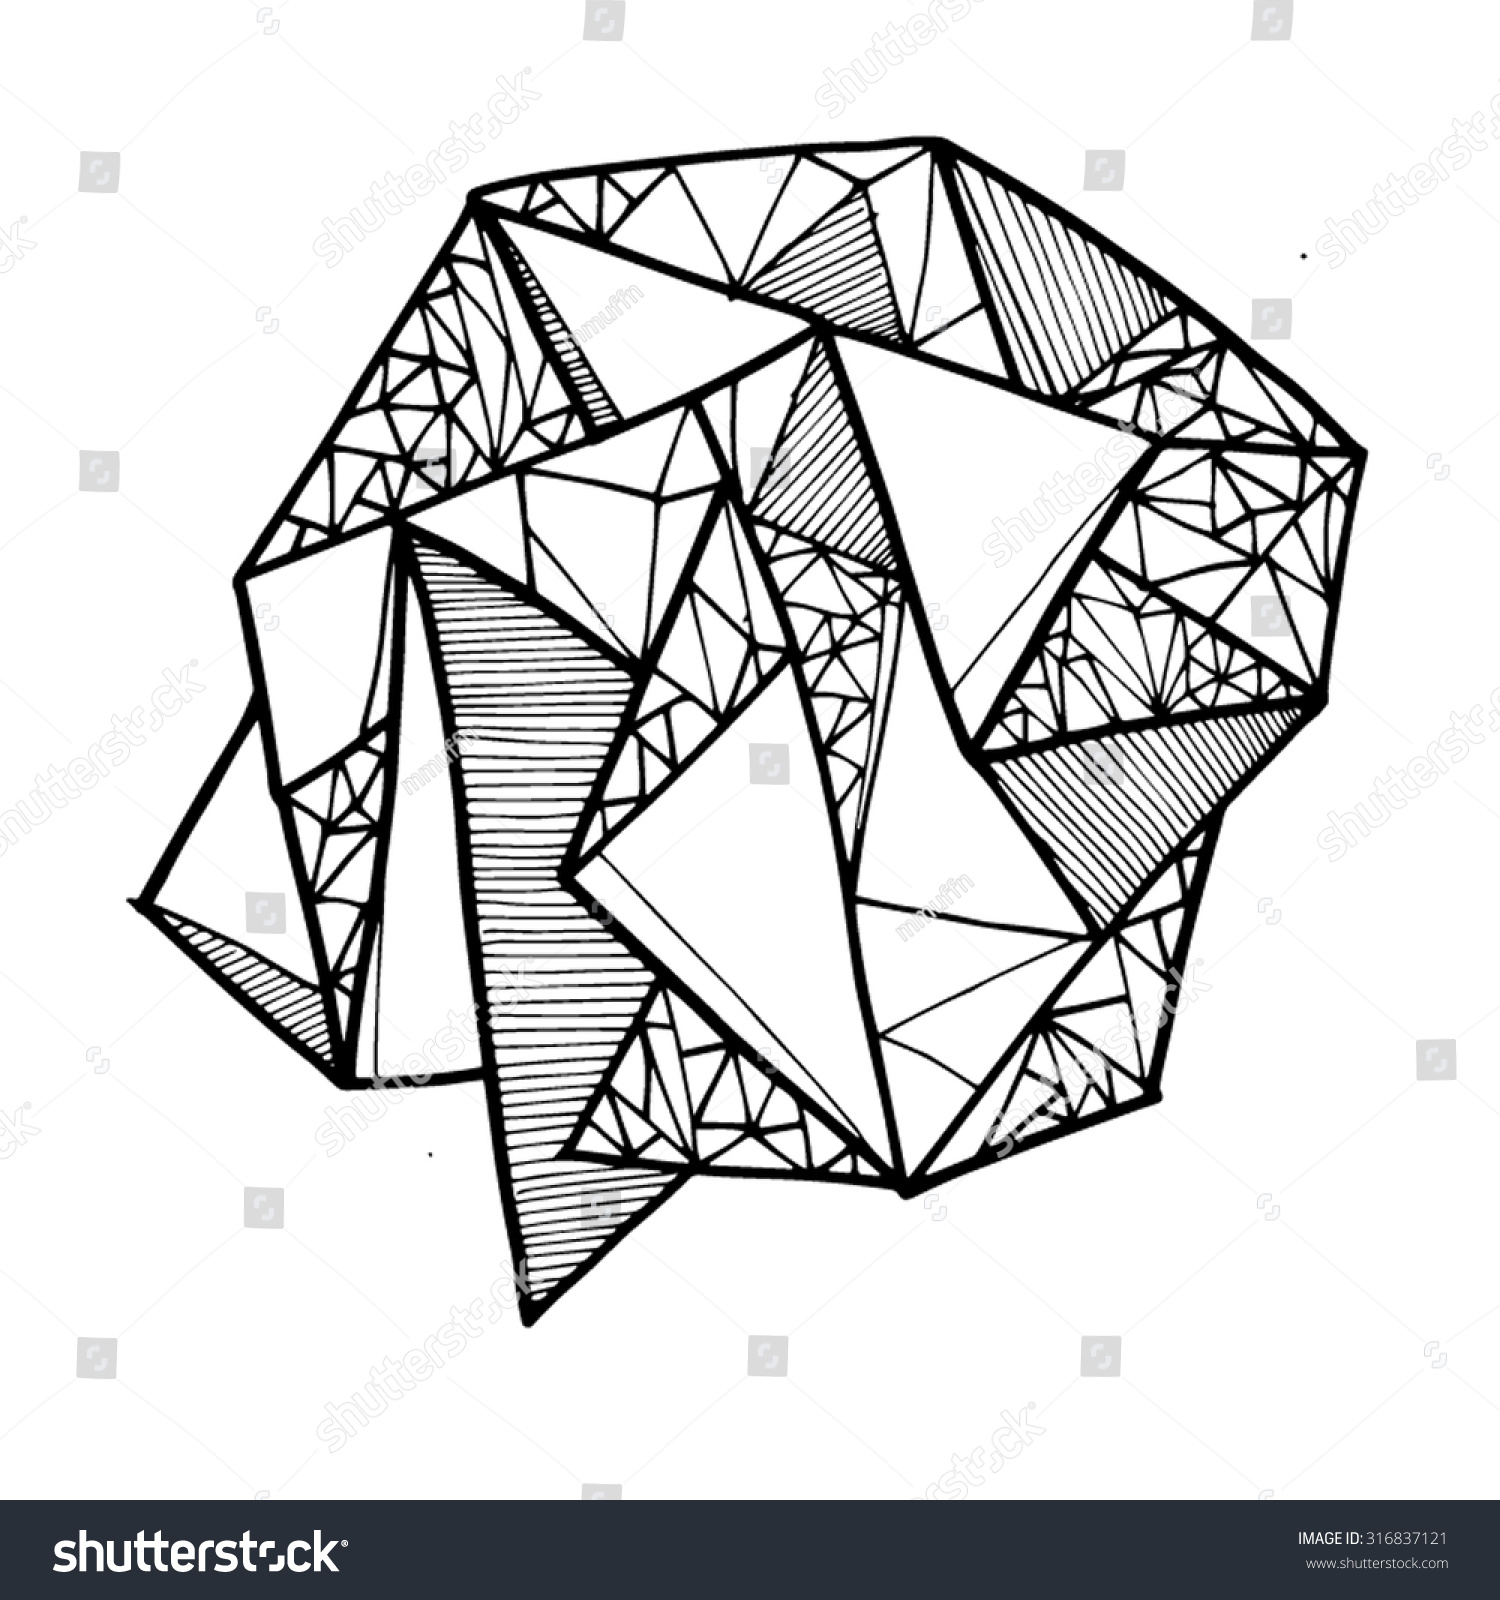 Line In Art And Design : Geometric shape lines lineart shapes line stock vector